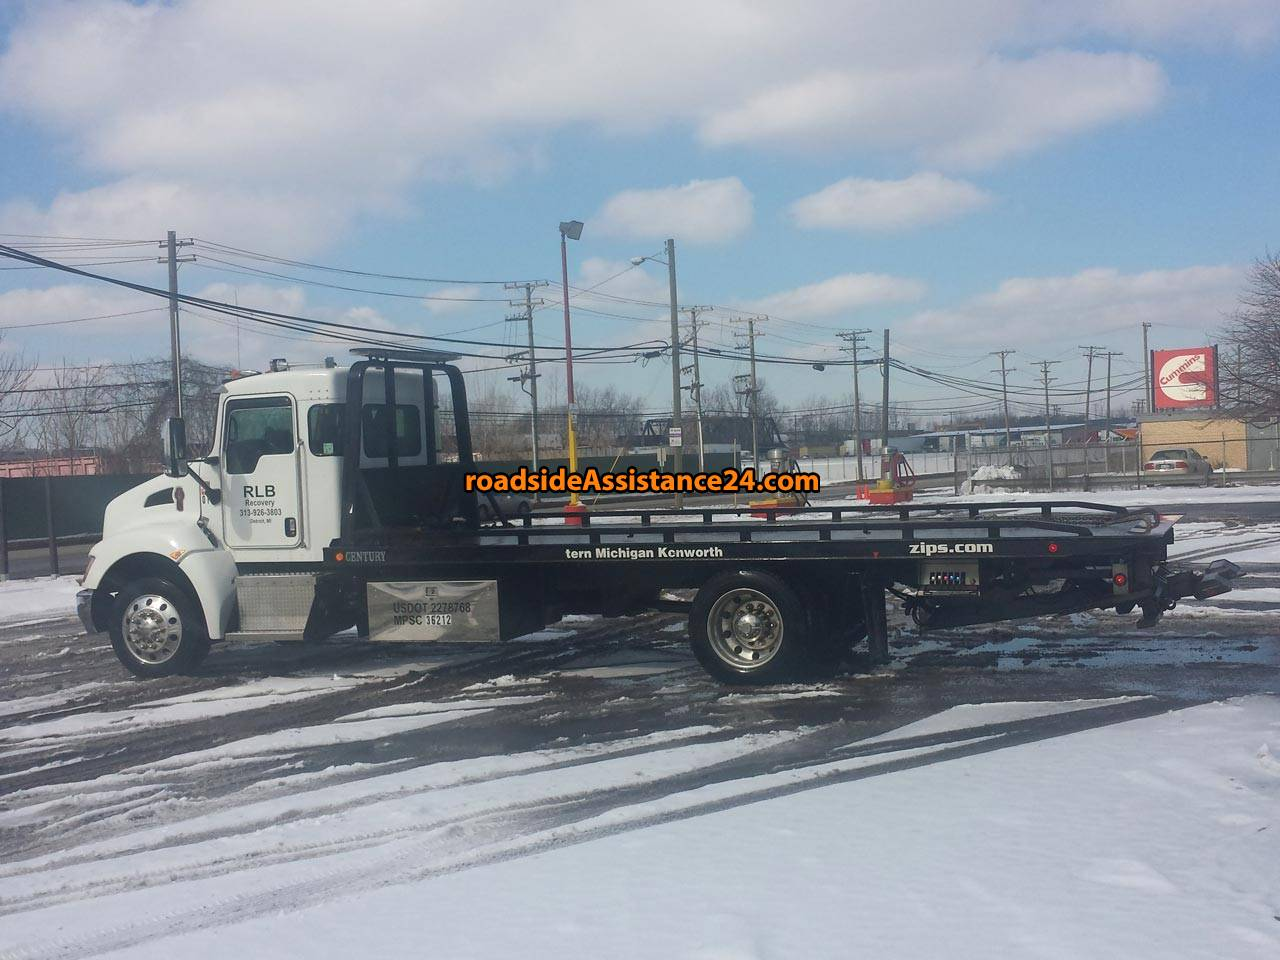 RLB Towing & Recovery